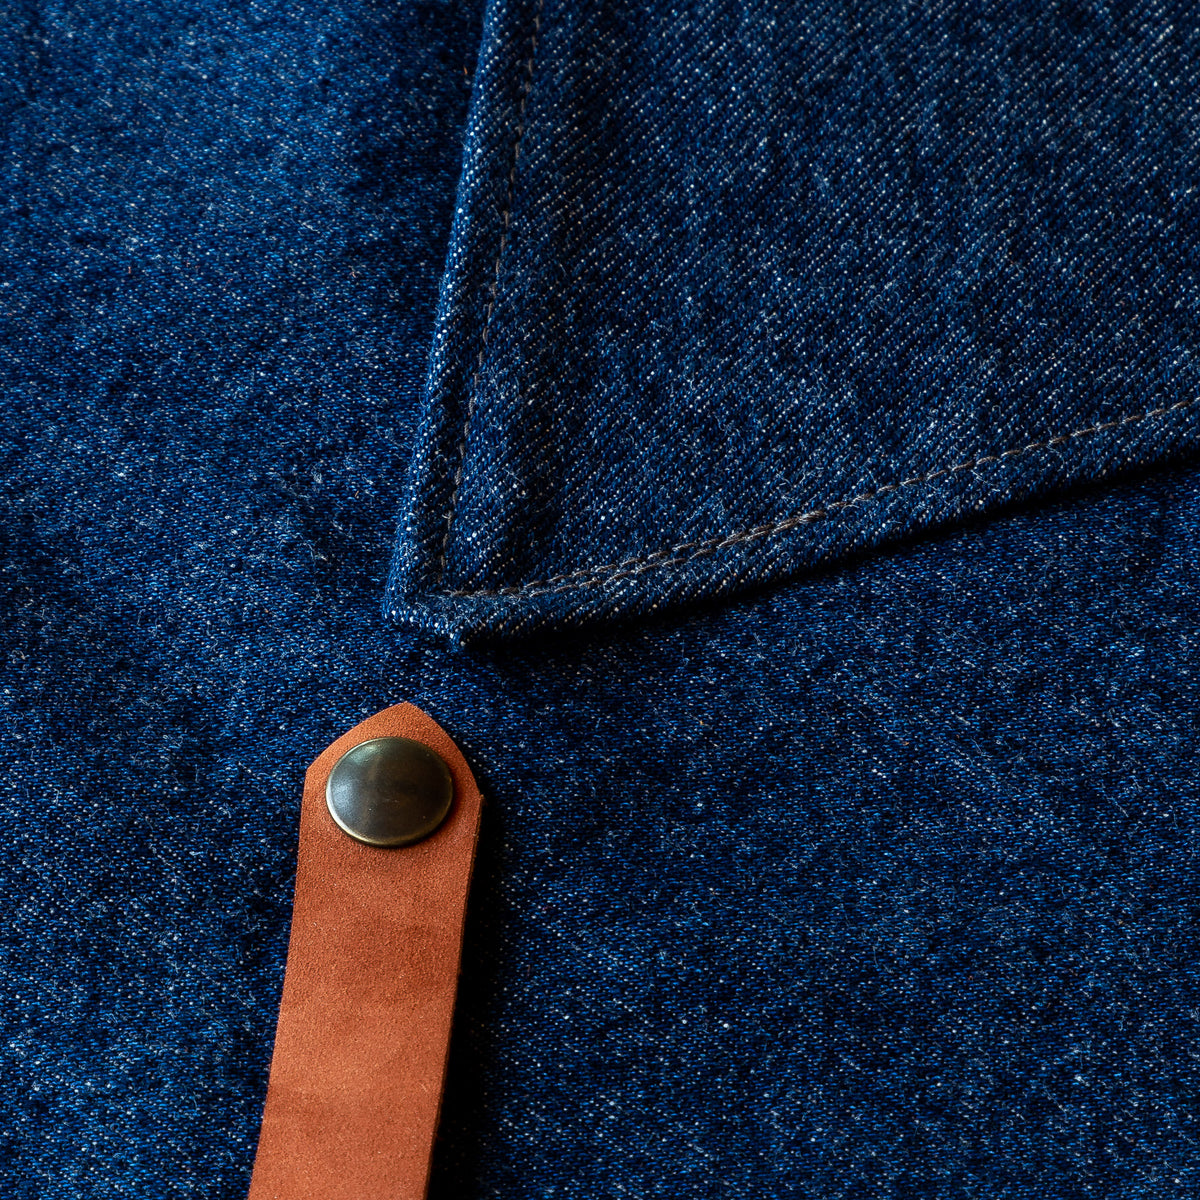 Detail View - Handmade Sturdy Workshop & Gardening Apron in Denim & Leather - Sold by Chic & Basta